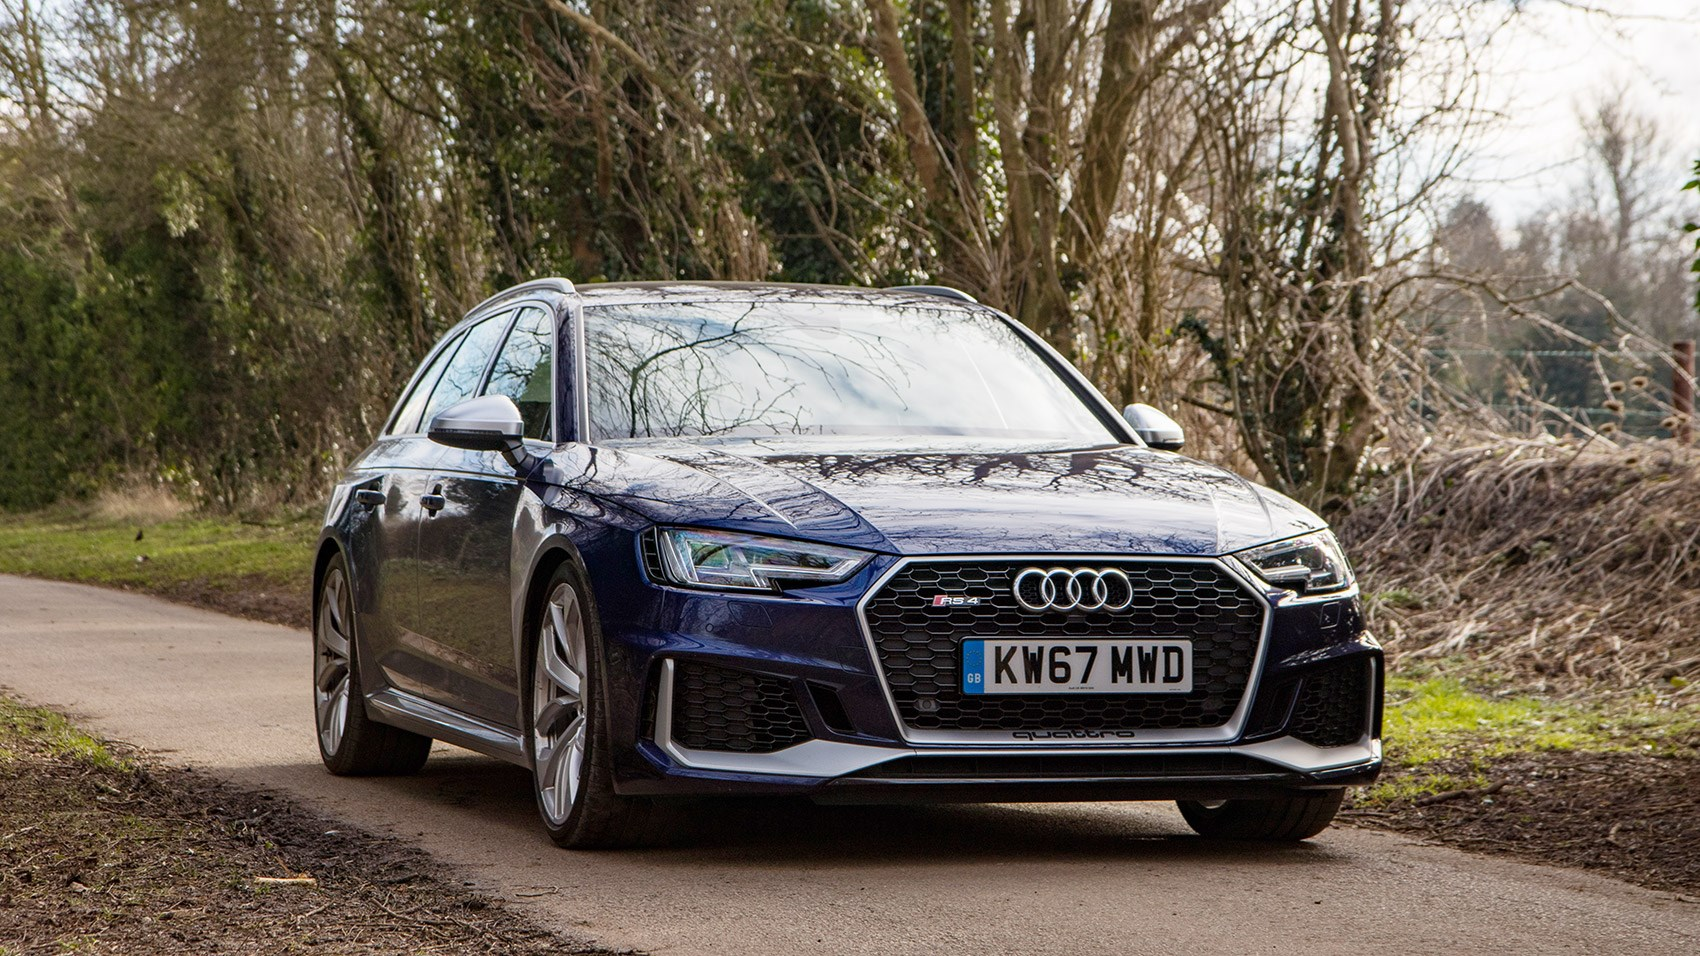 New Audi RS4: UK prices start at £62,175 in the UK